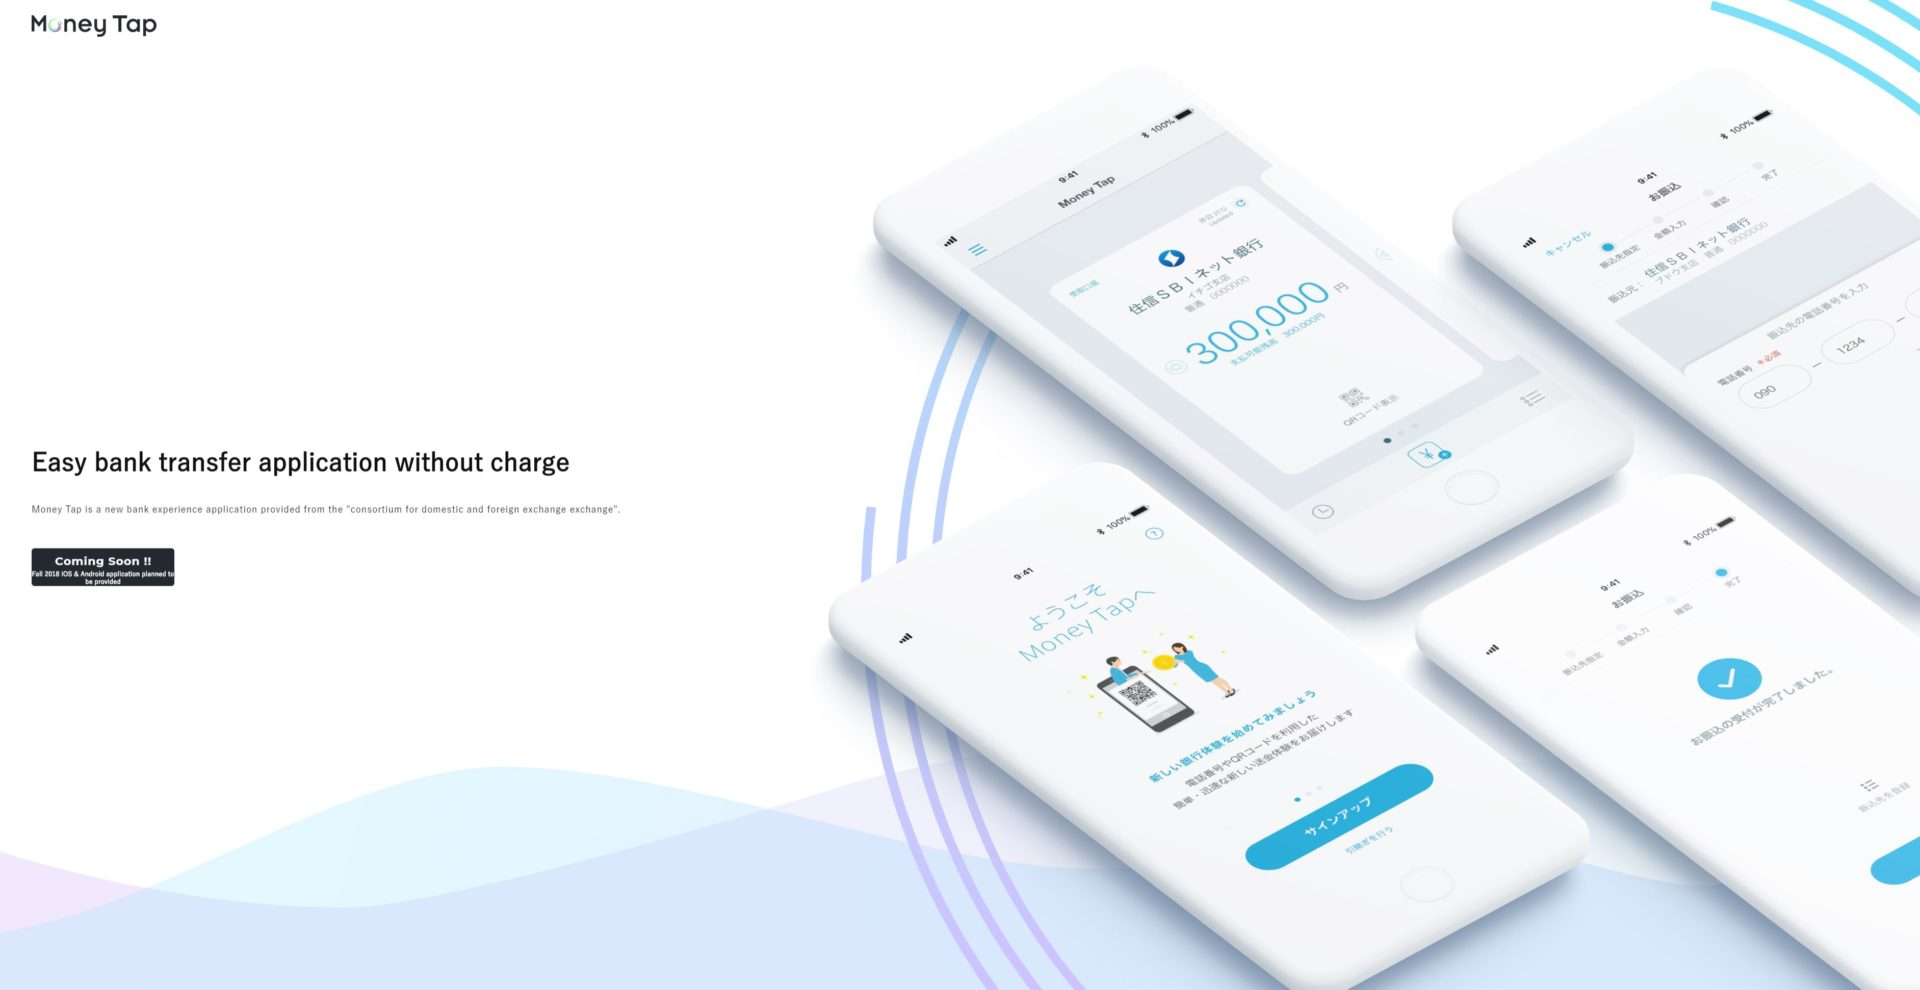 SBI Ripple Asia Announces Official Launch of MoneyTap Mobile App